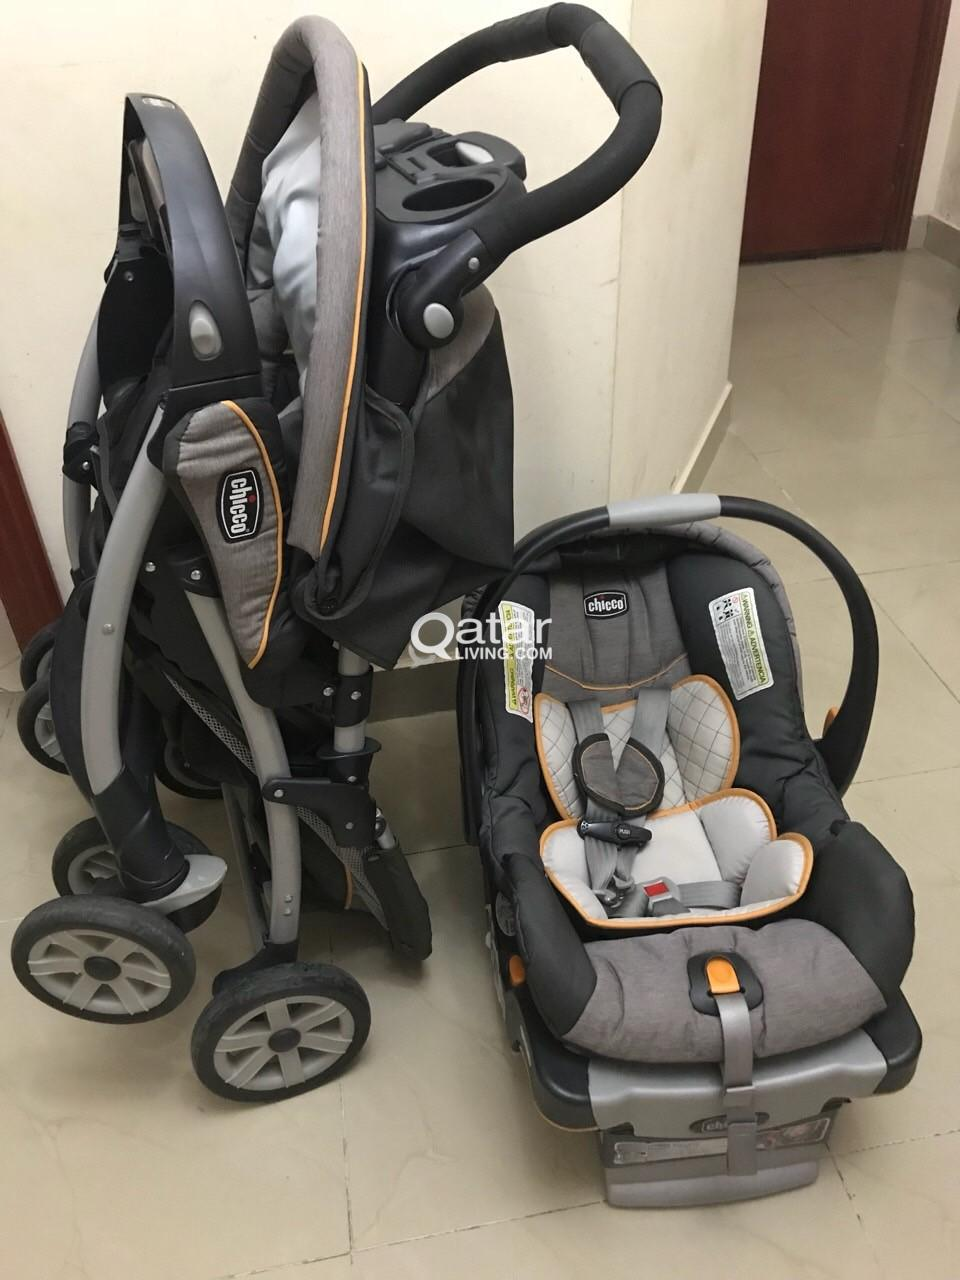 Adorable Title Title Title Title Co Cortina Co Cortina Keyfit Travel System Qatar Living Co Cortina Cx Travel System Iron Reviews Co Cortina Cx Travel System Stroller Iron baby Chicco Cortina Cx Travel System